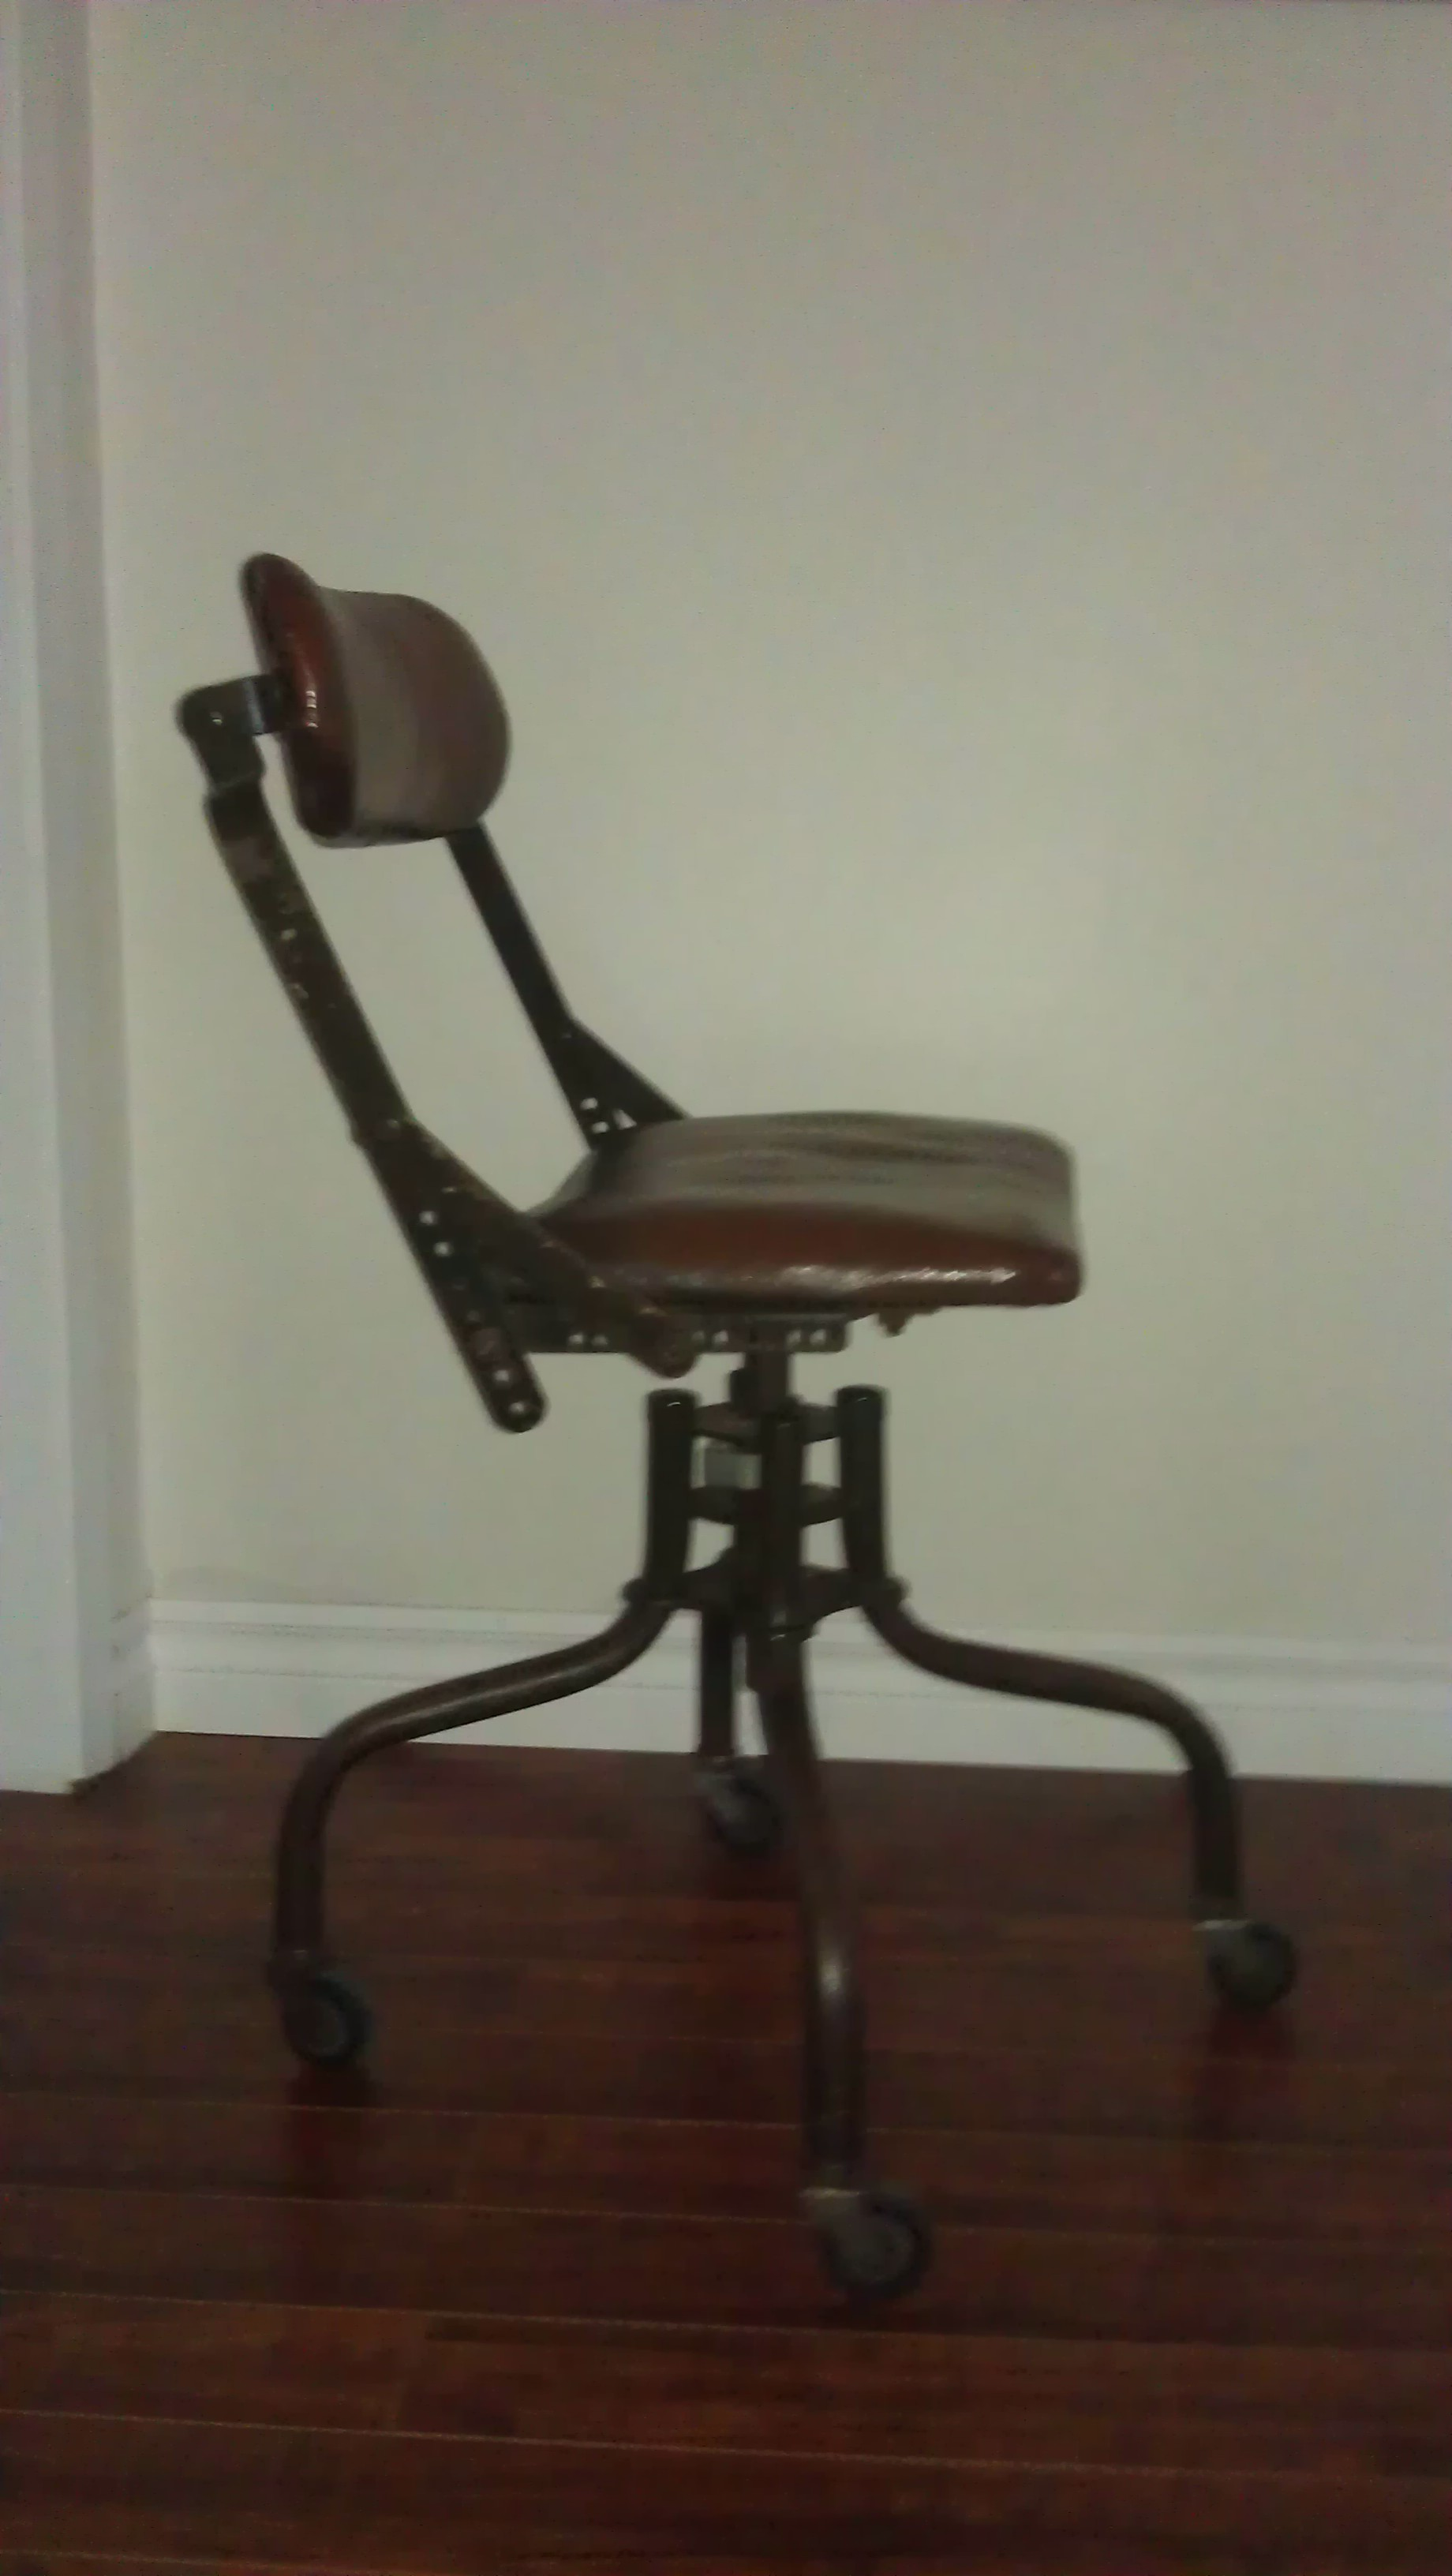 1930s American Industrial Office Chair For Sale